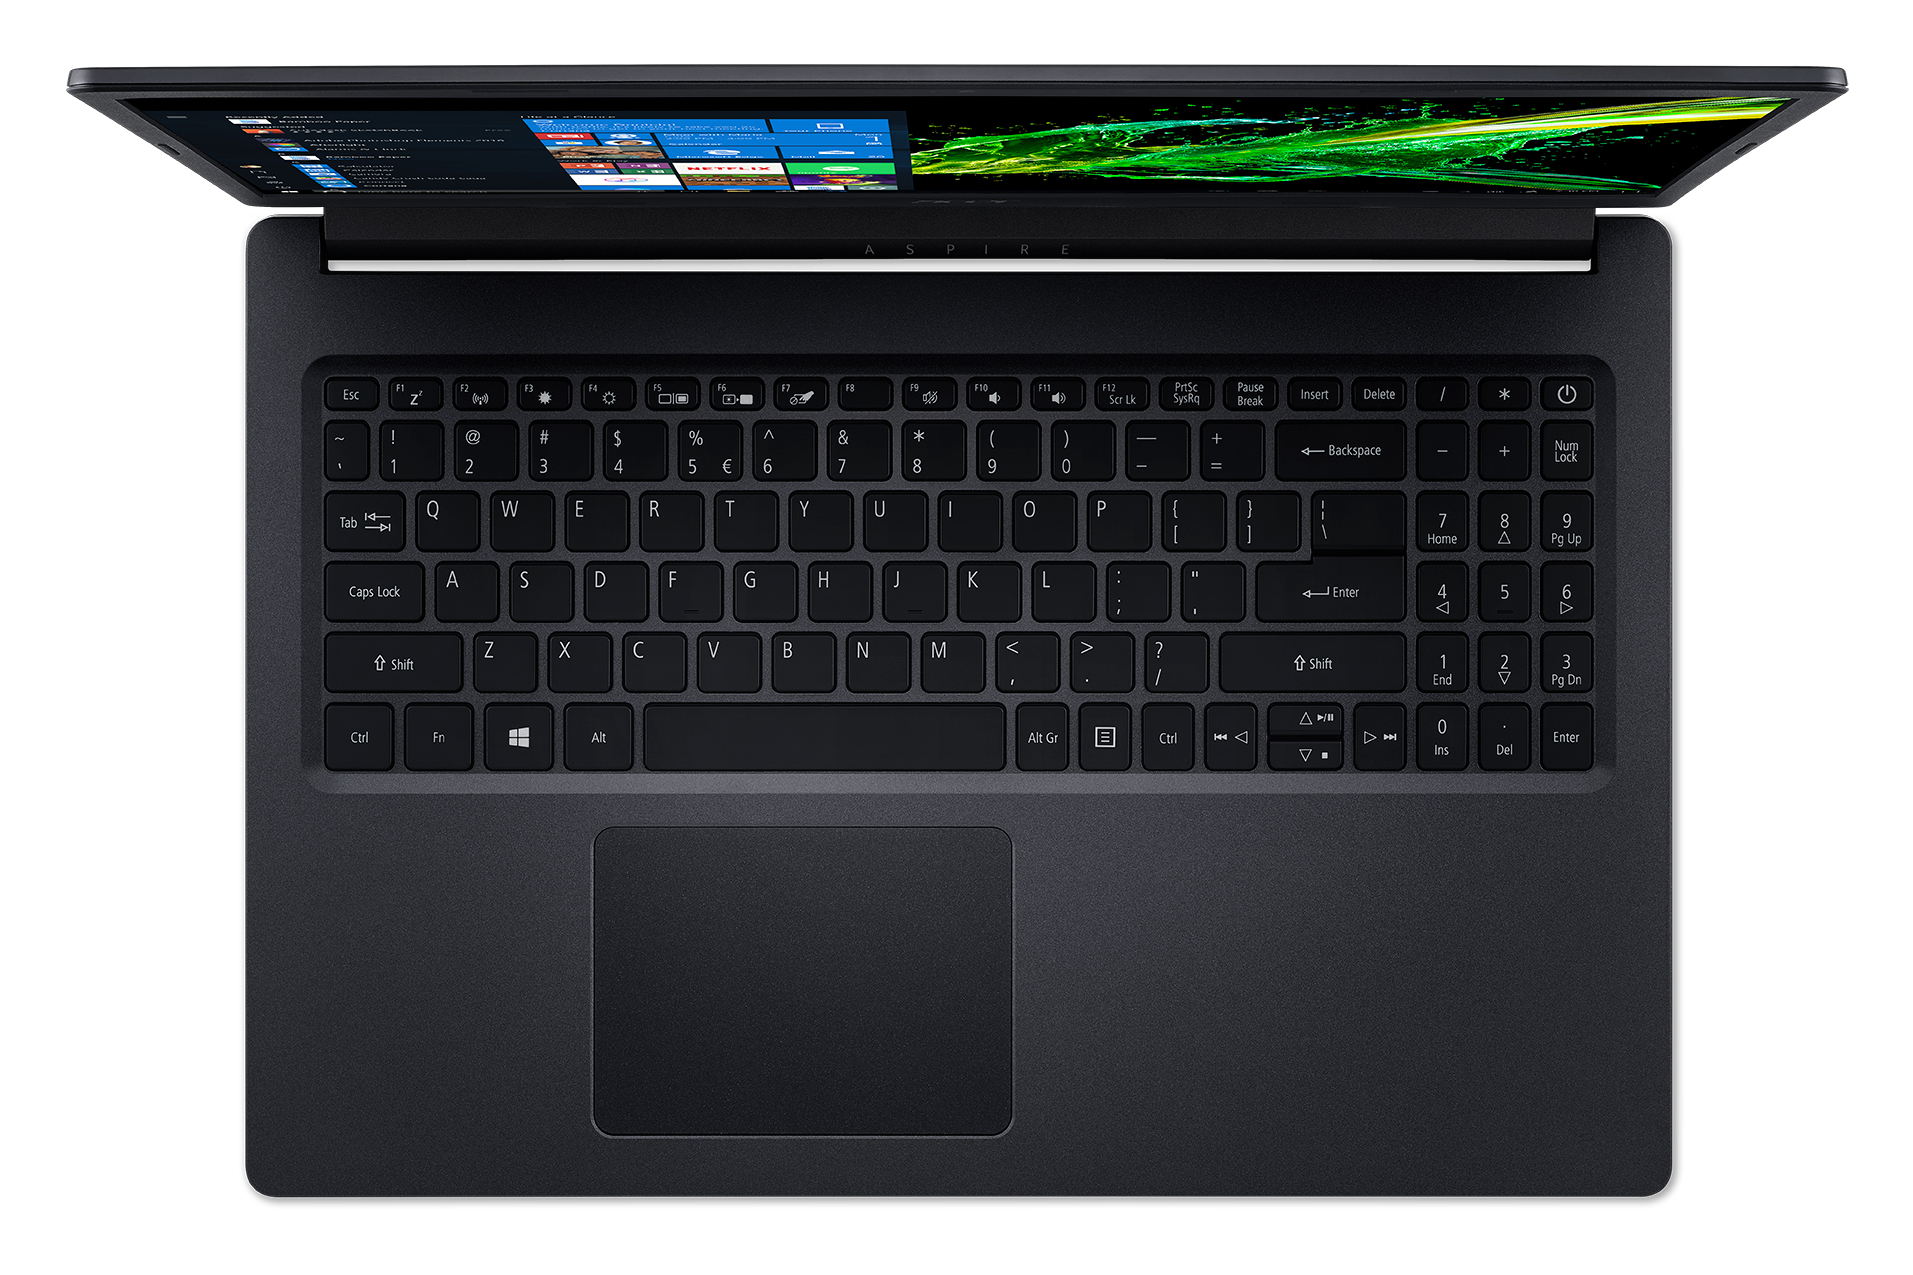 Acer Aspire 3 A315-55G-3983, Charcoal Black, 15.6inch FHD ComfyView LED, i3-10110U, 8GB DDR4, 1TB PCIe NVMe SSD, NVIDIA GeForce MX230 2GB GDDR5, No ODD, Wi-Fi 5 AC + BT 4.0, 36 Wh battery, 0.3MP webcam with Microphone, Windows 10 Home, US Int. Keyboard